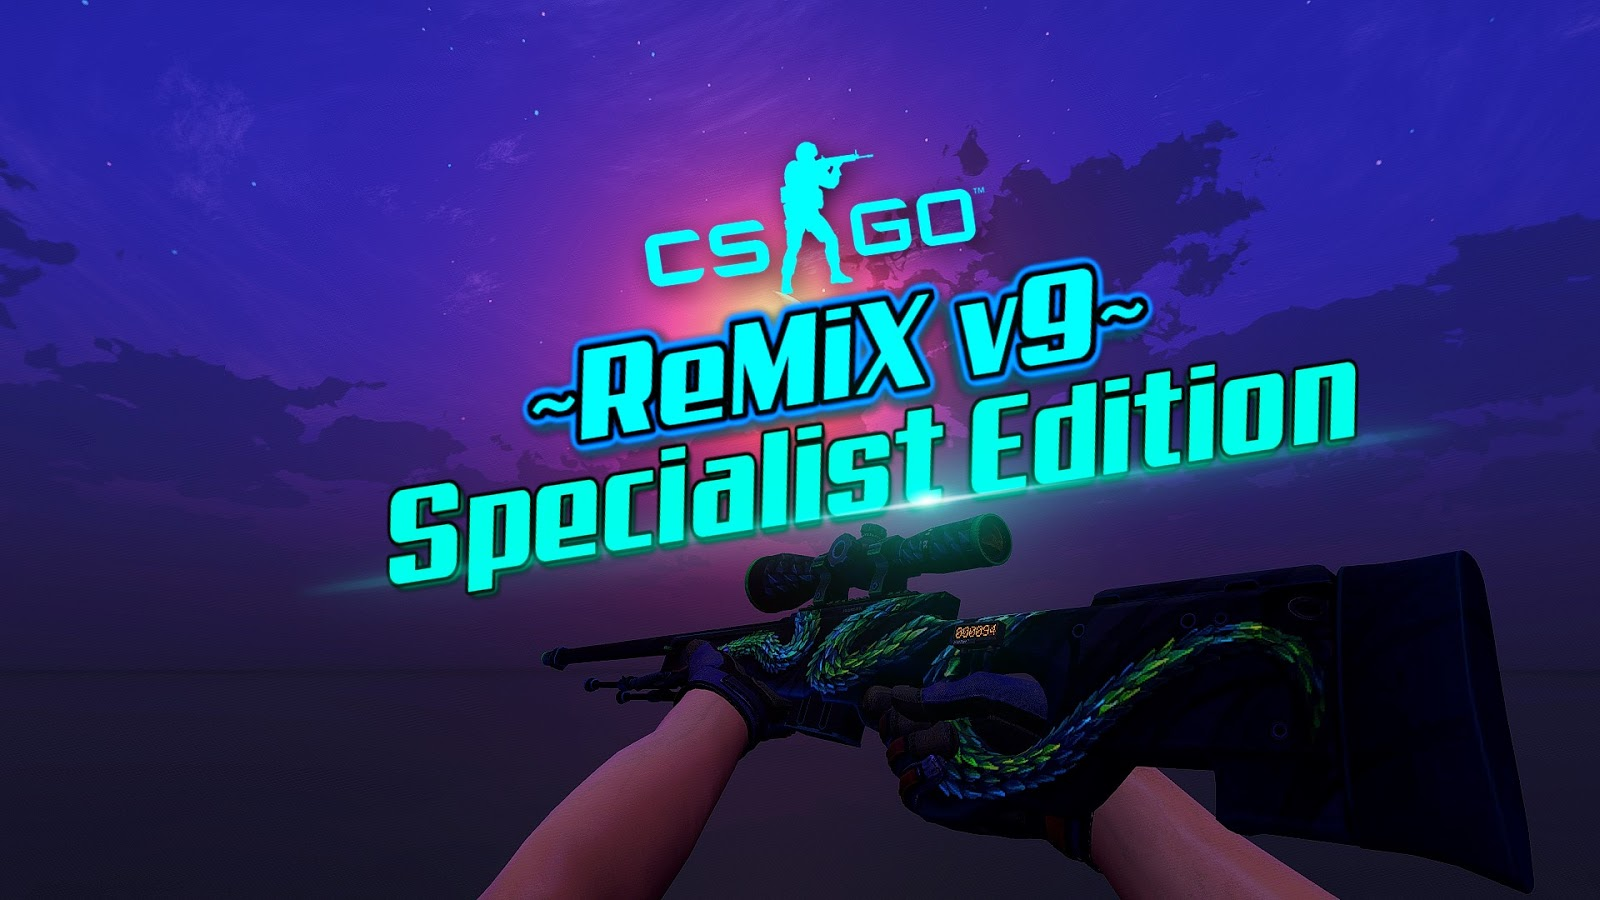 CSGO_ReMiX_MoDs: 2019